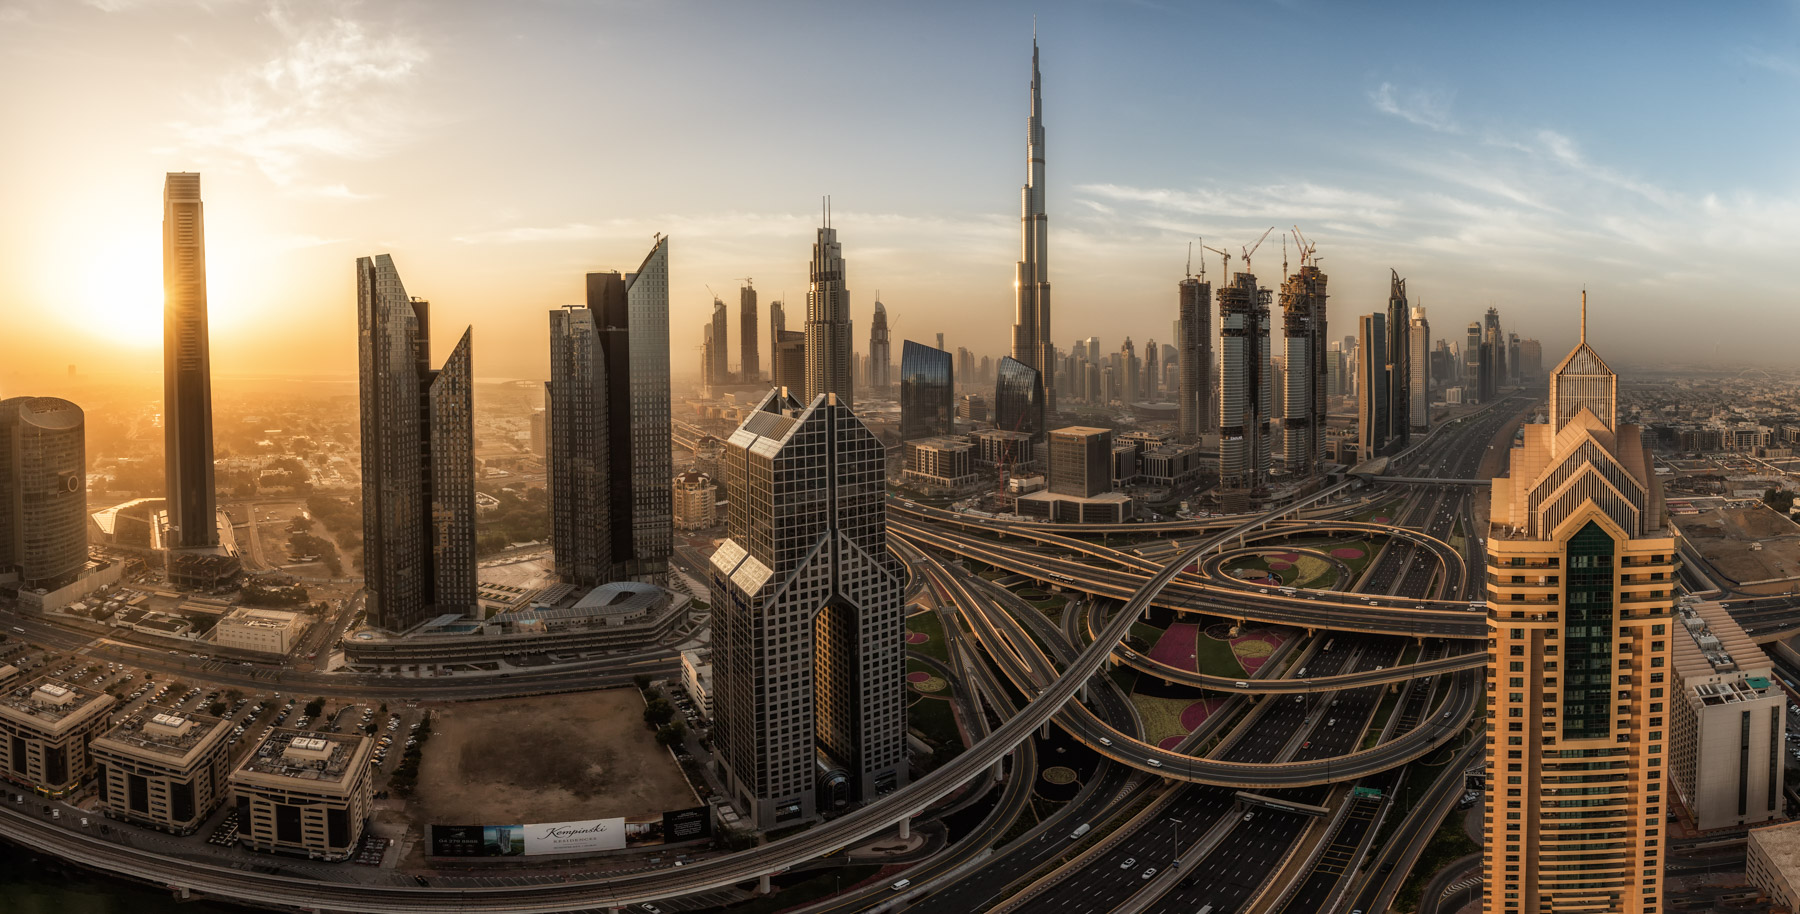 Sunrise in Dubai - City Photography by Lukas Petereit